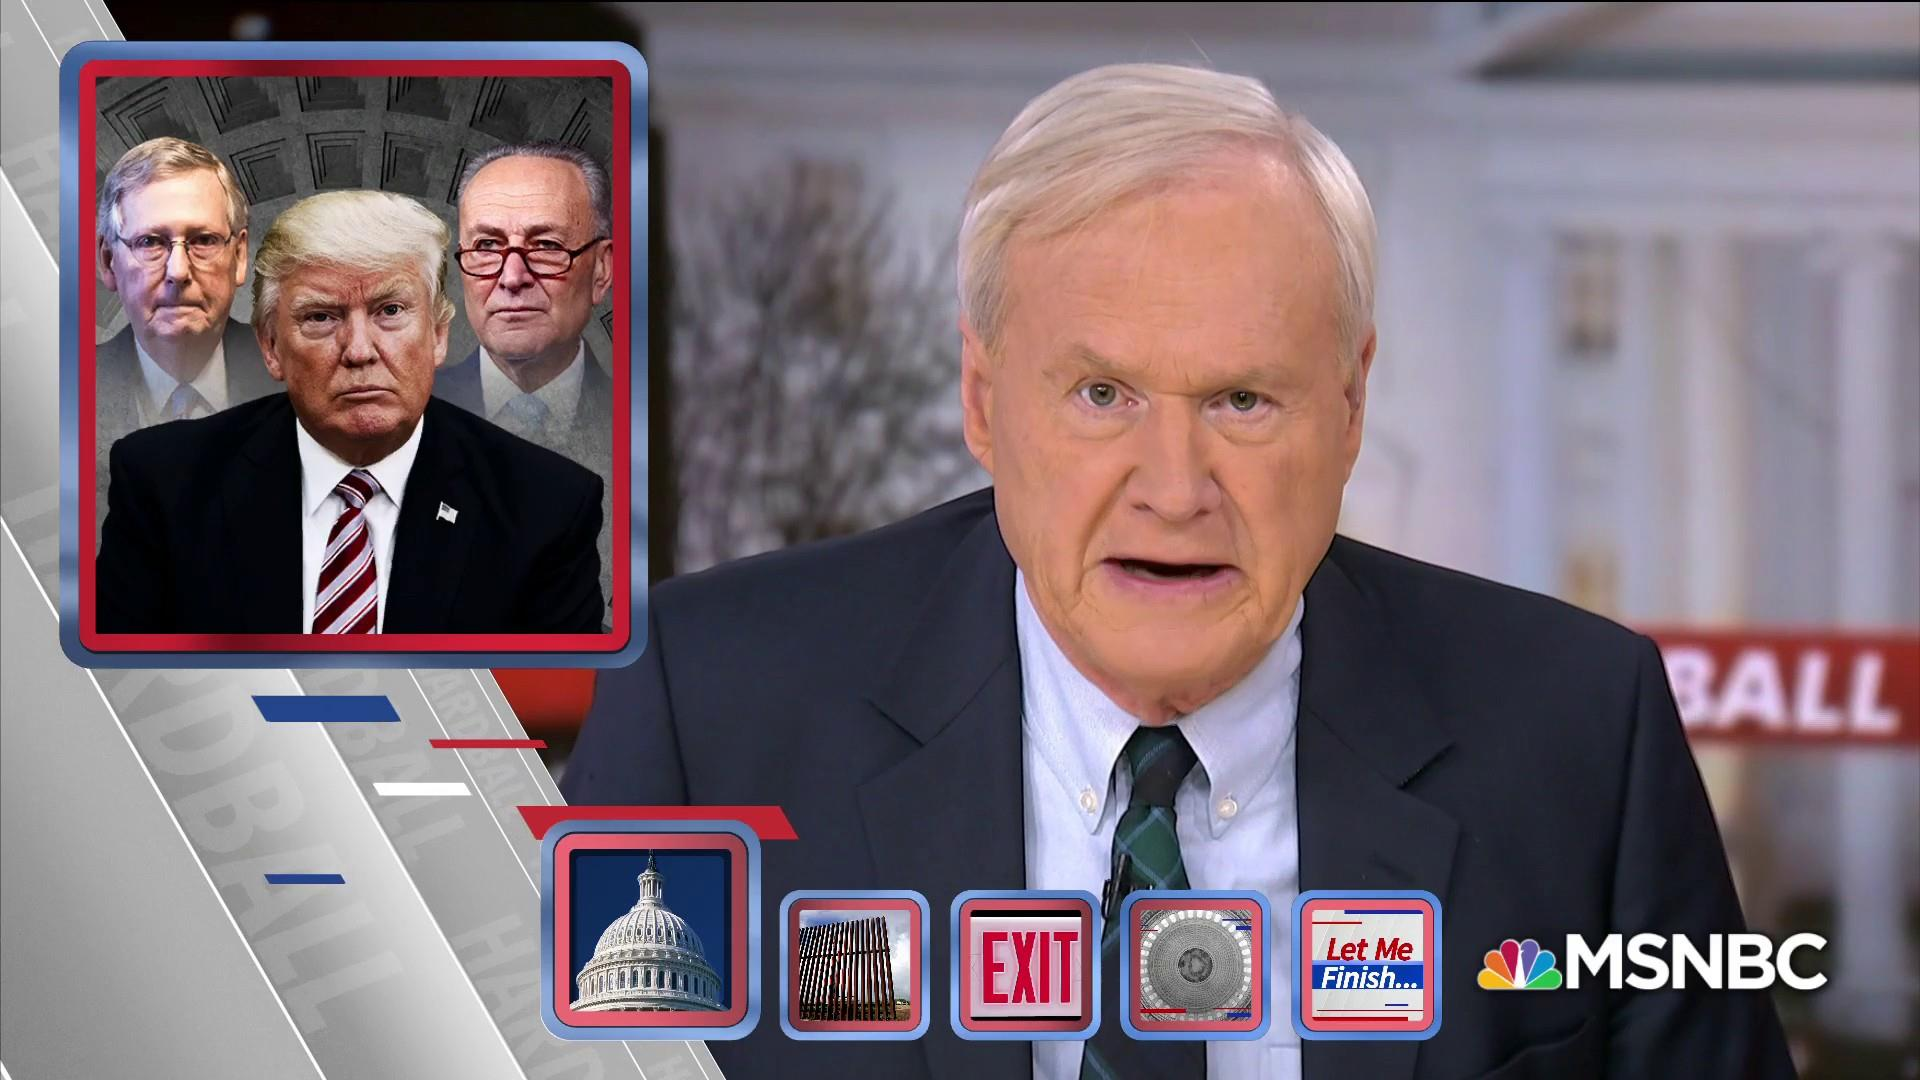 Matthews: Trump's mercurial instincts plunged DC into chaos